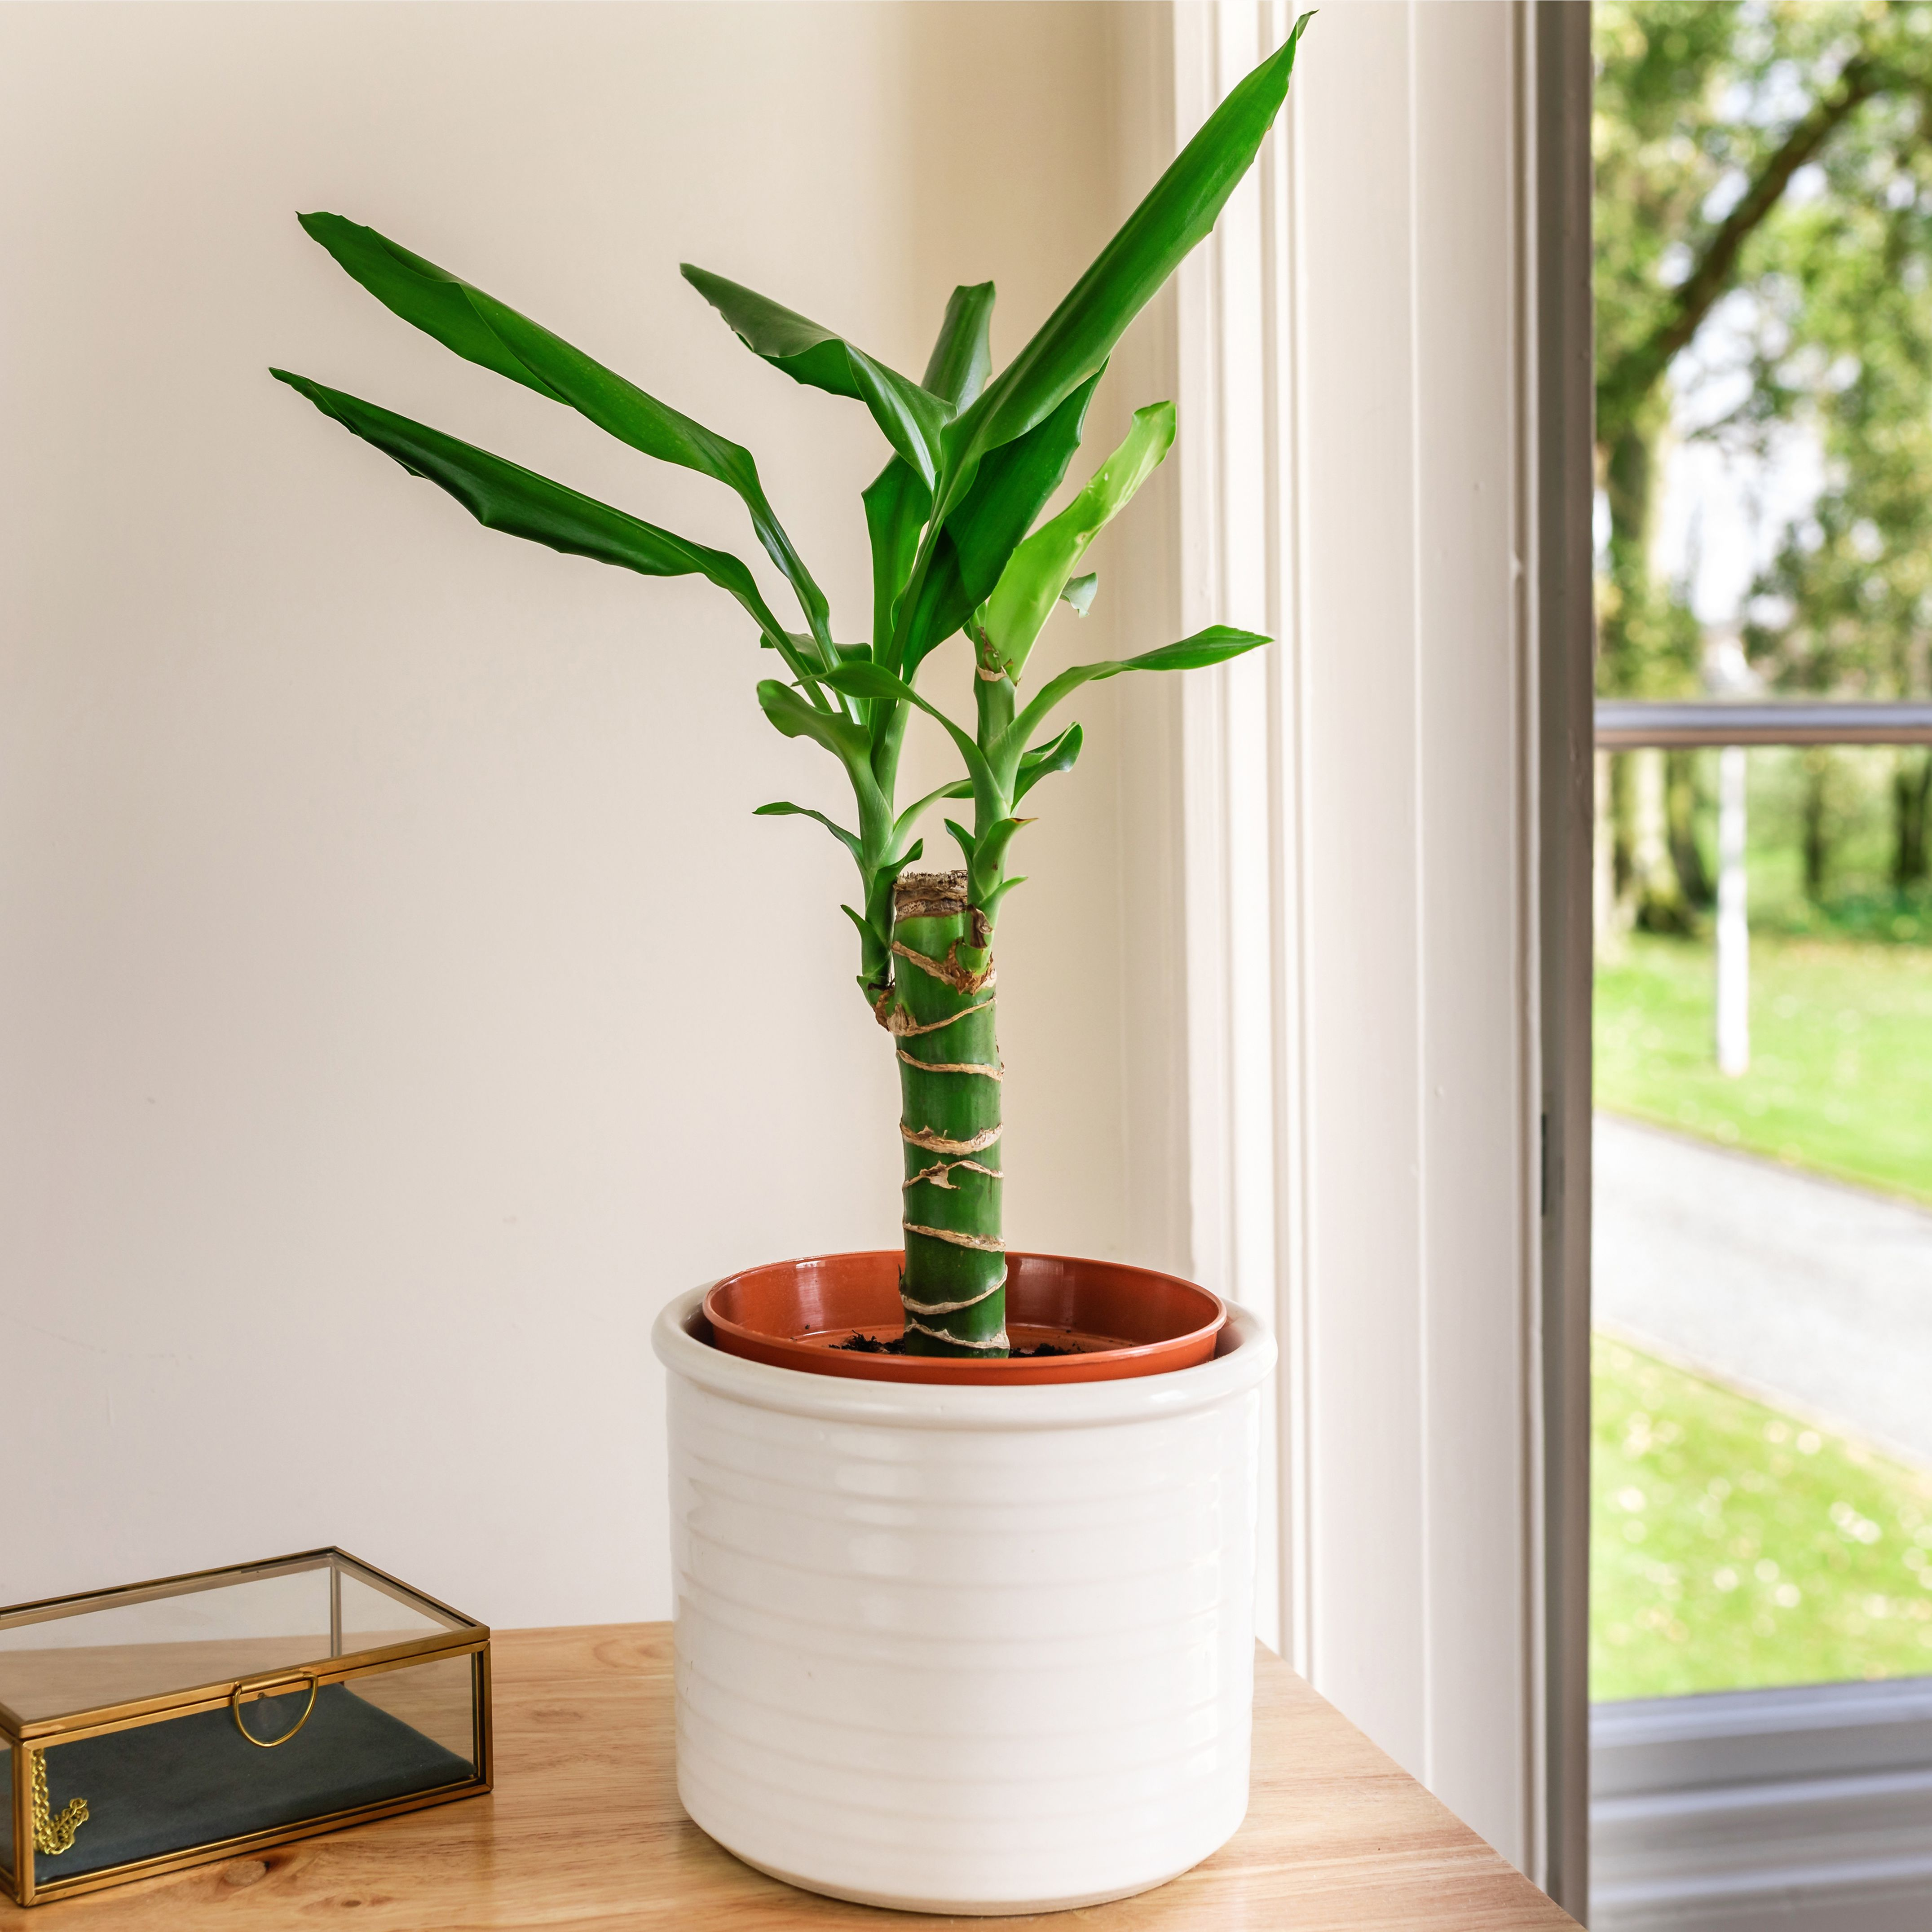 Corn Plant (Dracaena): Care & Growing Guide